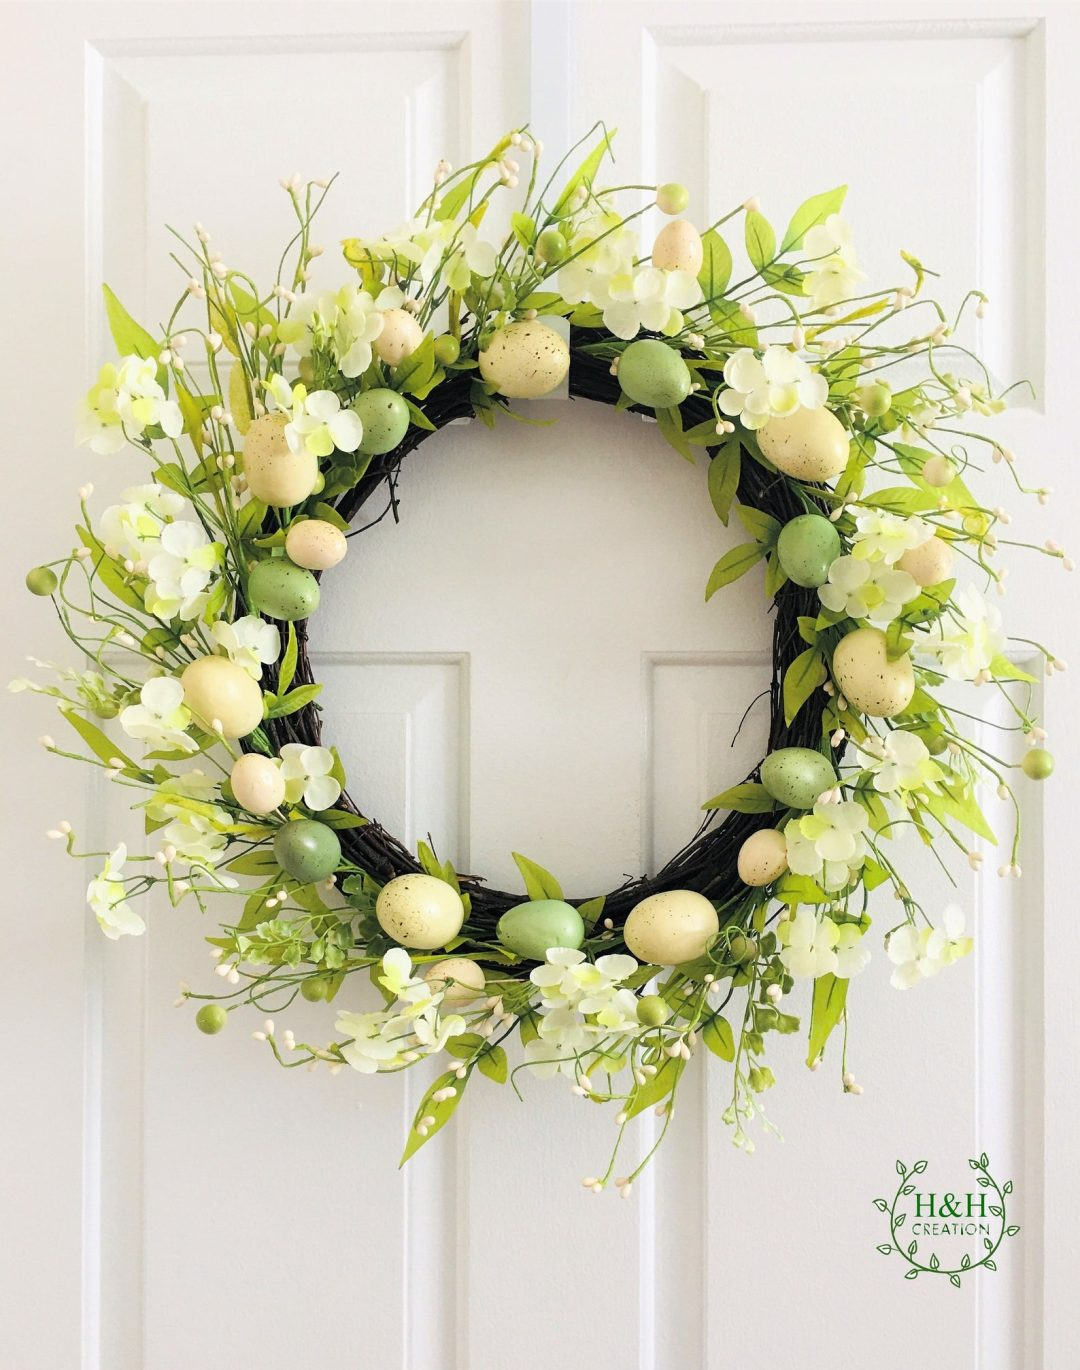 Simple egg wreath with flowers